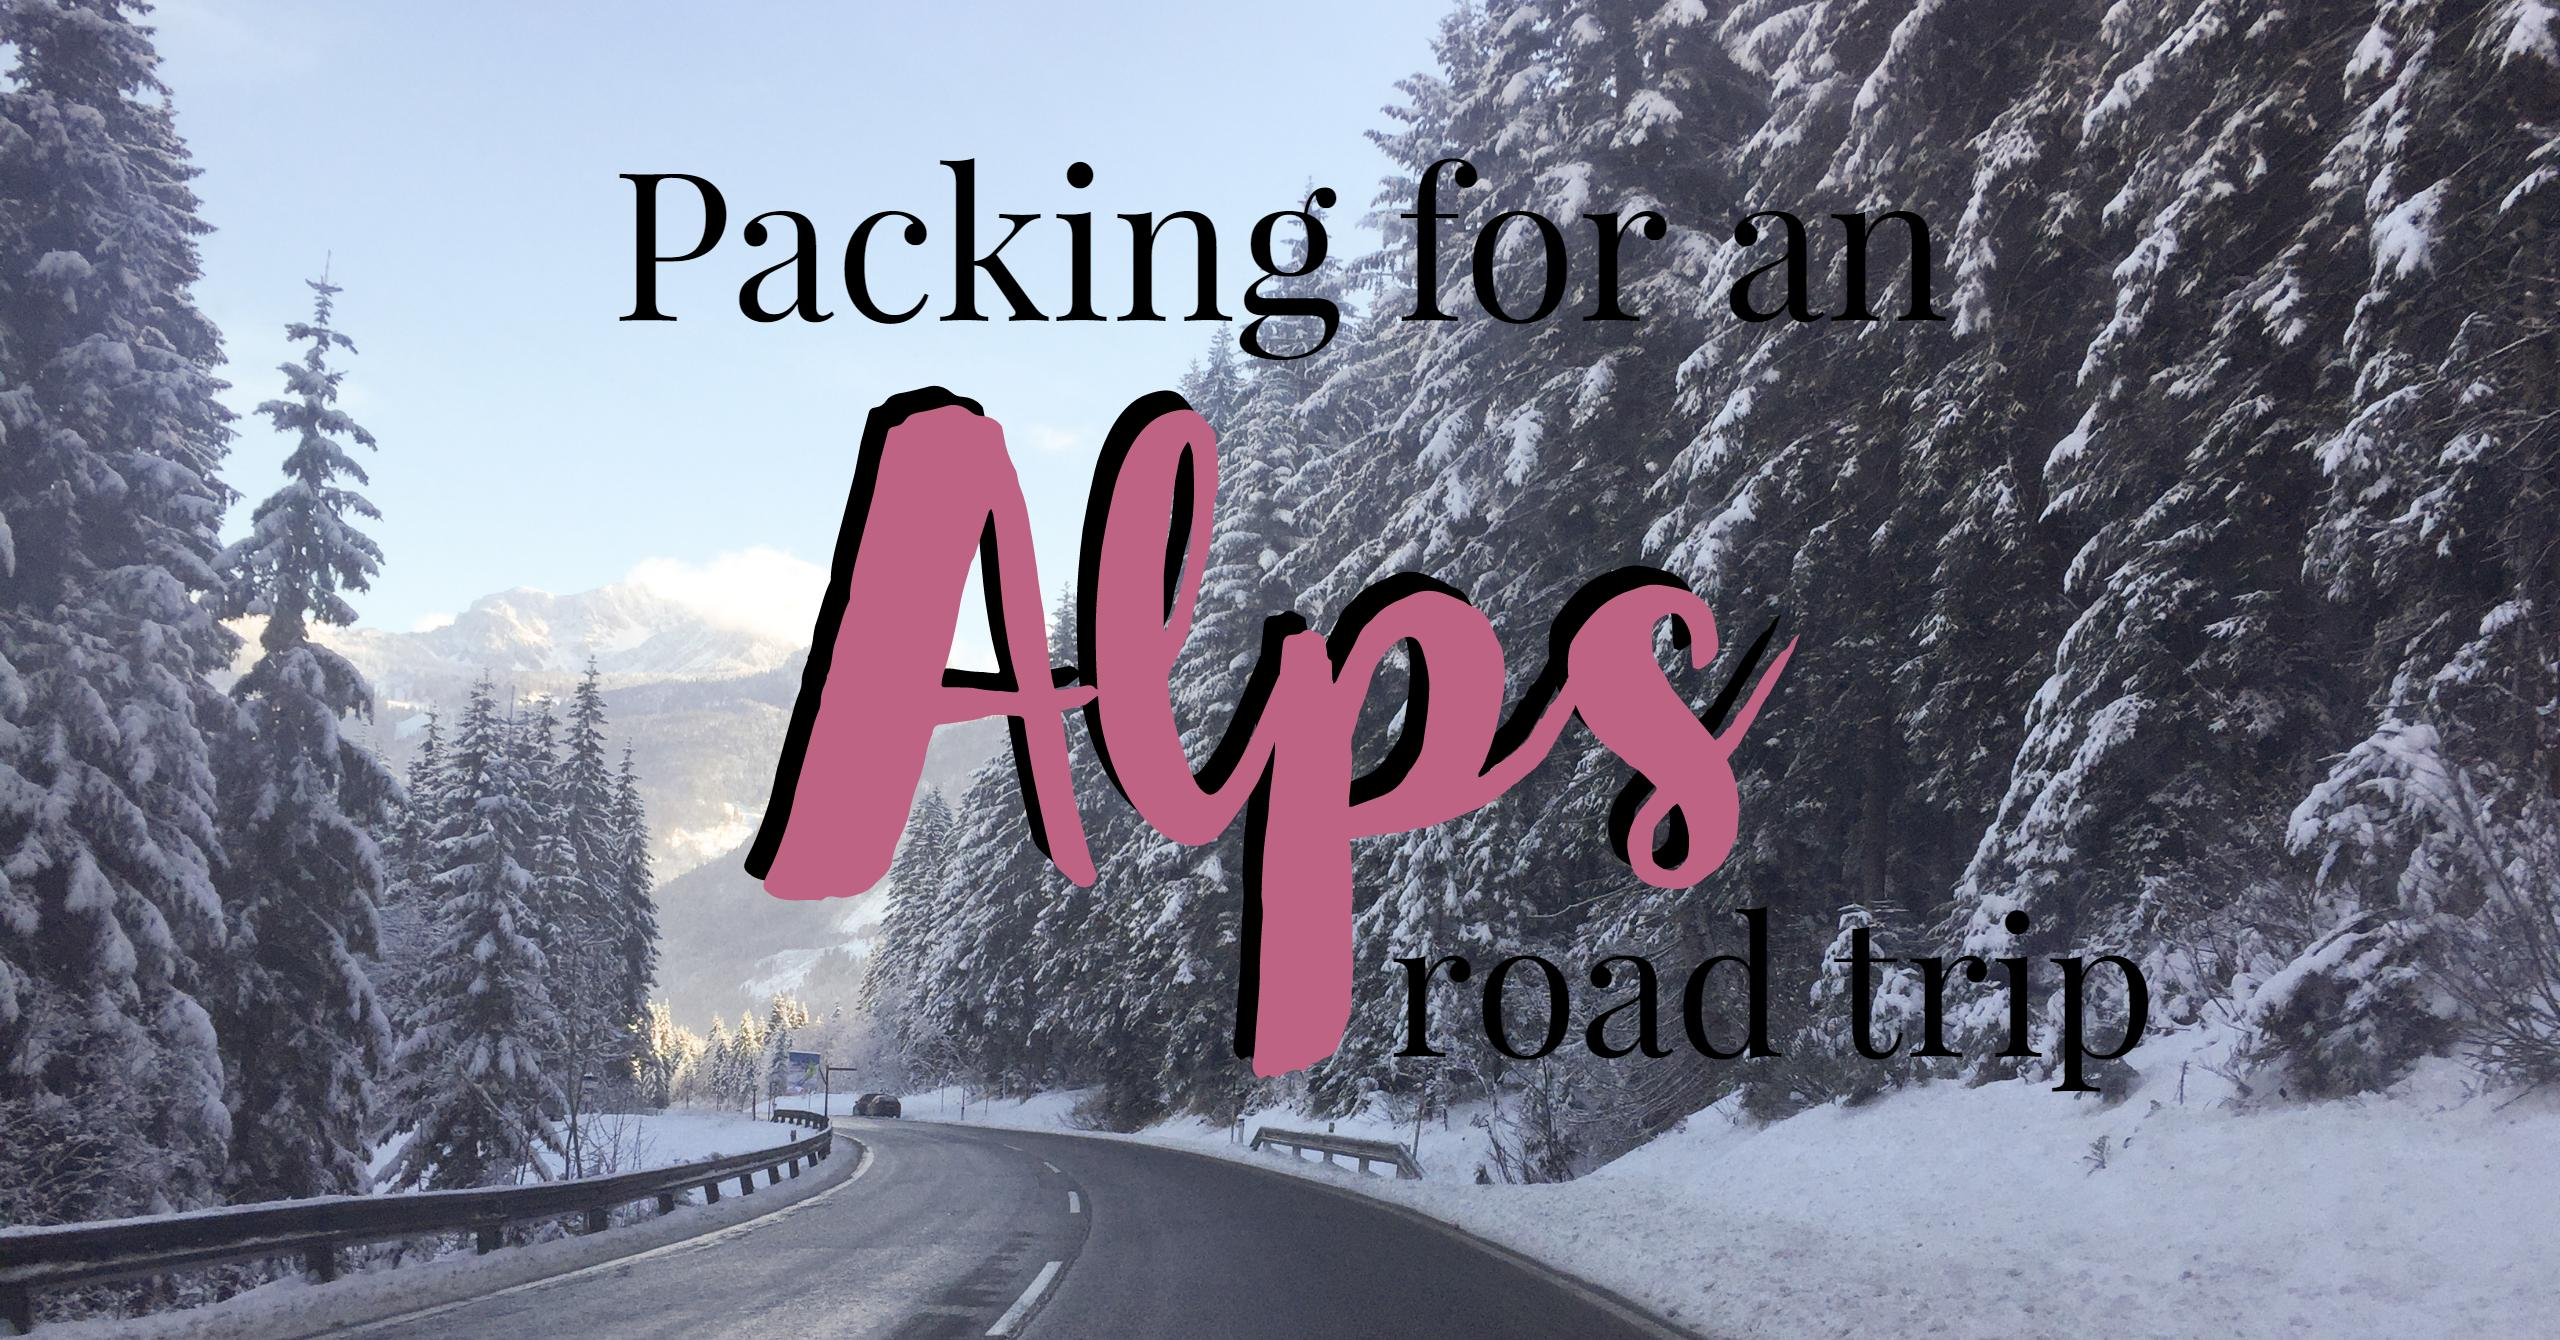 Packing for an Alps road trip | My Wandering Voyage travel blog